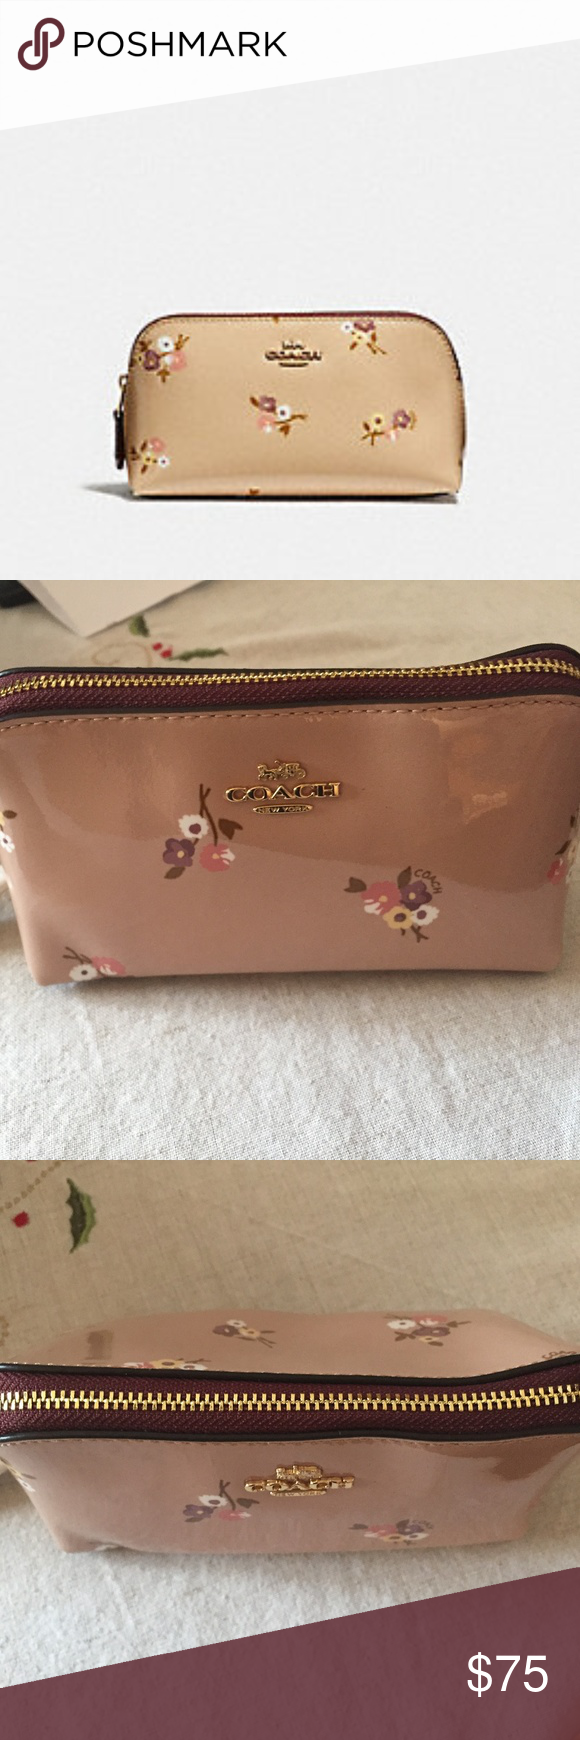 57a8de34ed57 Coach Cosmetic Case 17 with Baby Bouquet This is an absolutely stunning  (too pretty for